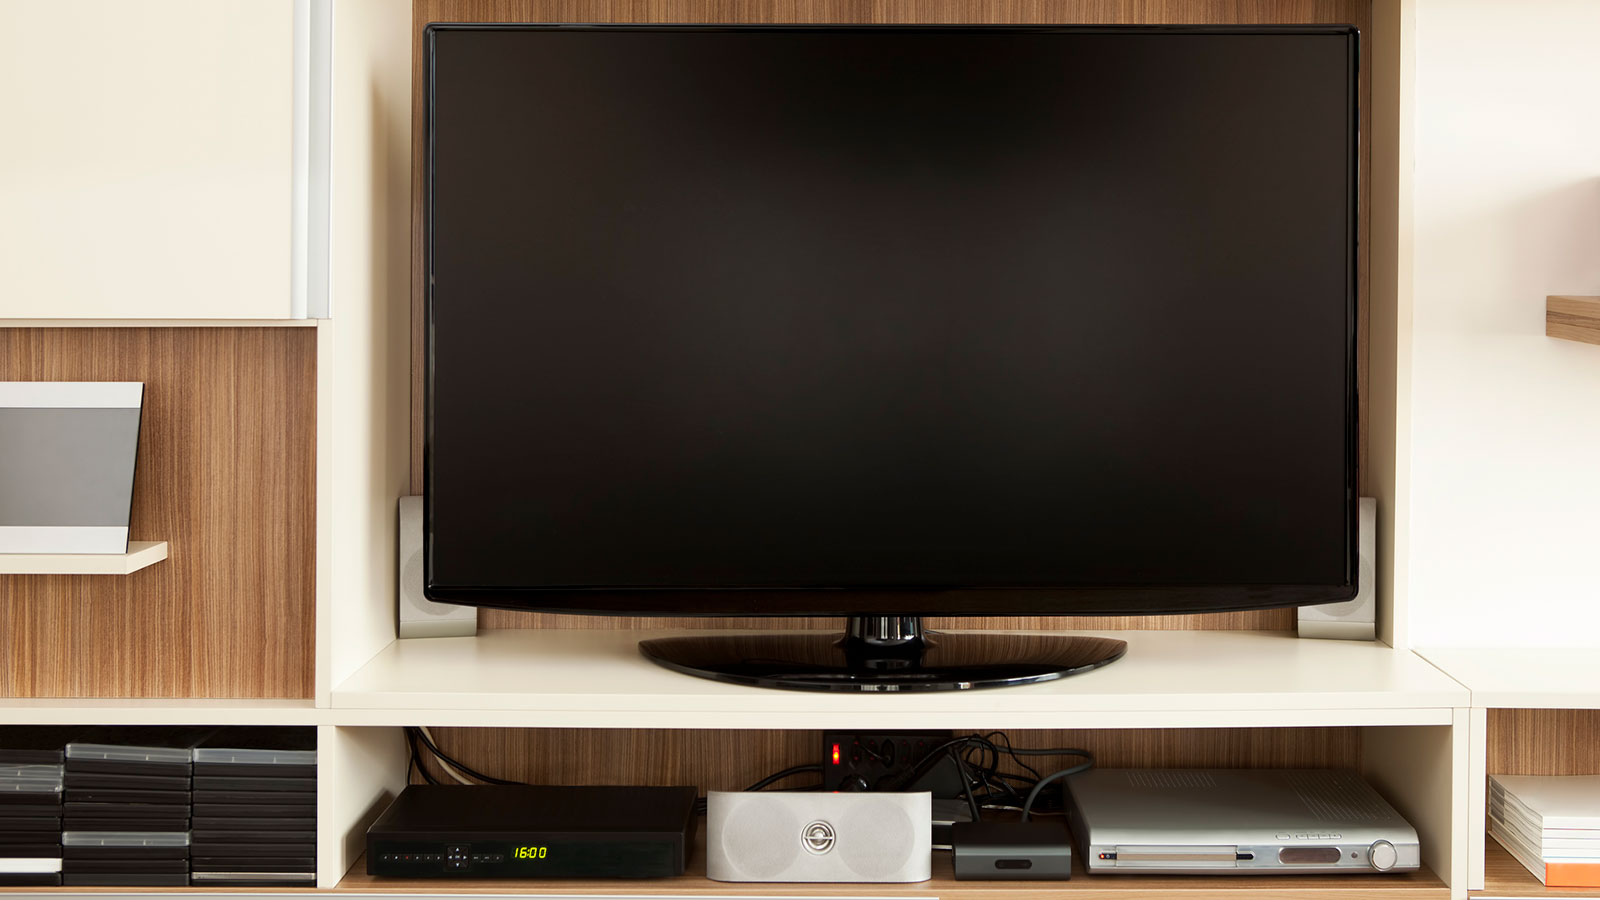 hight resolution of how to connect a dvd player to a tv